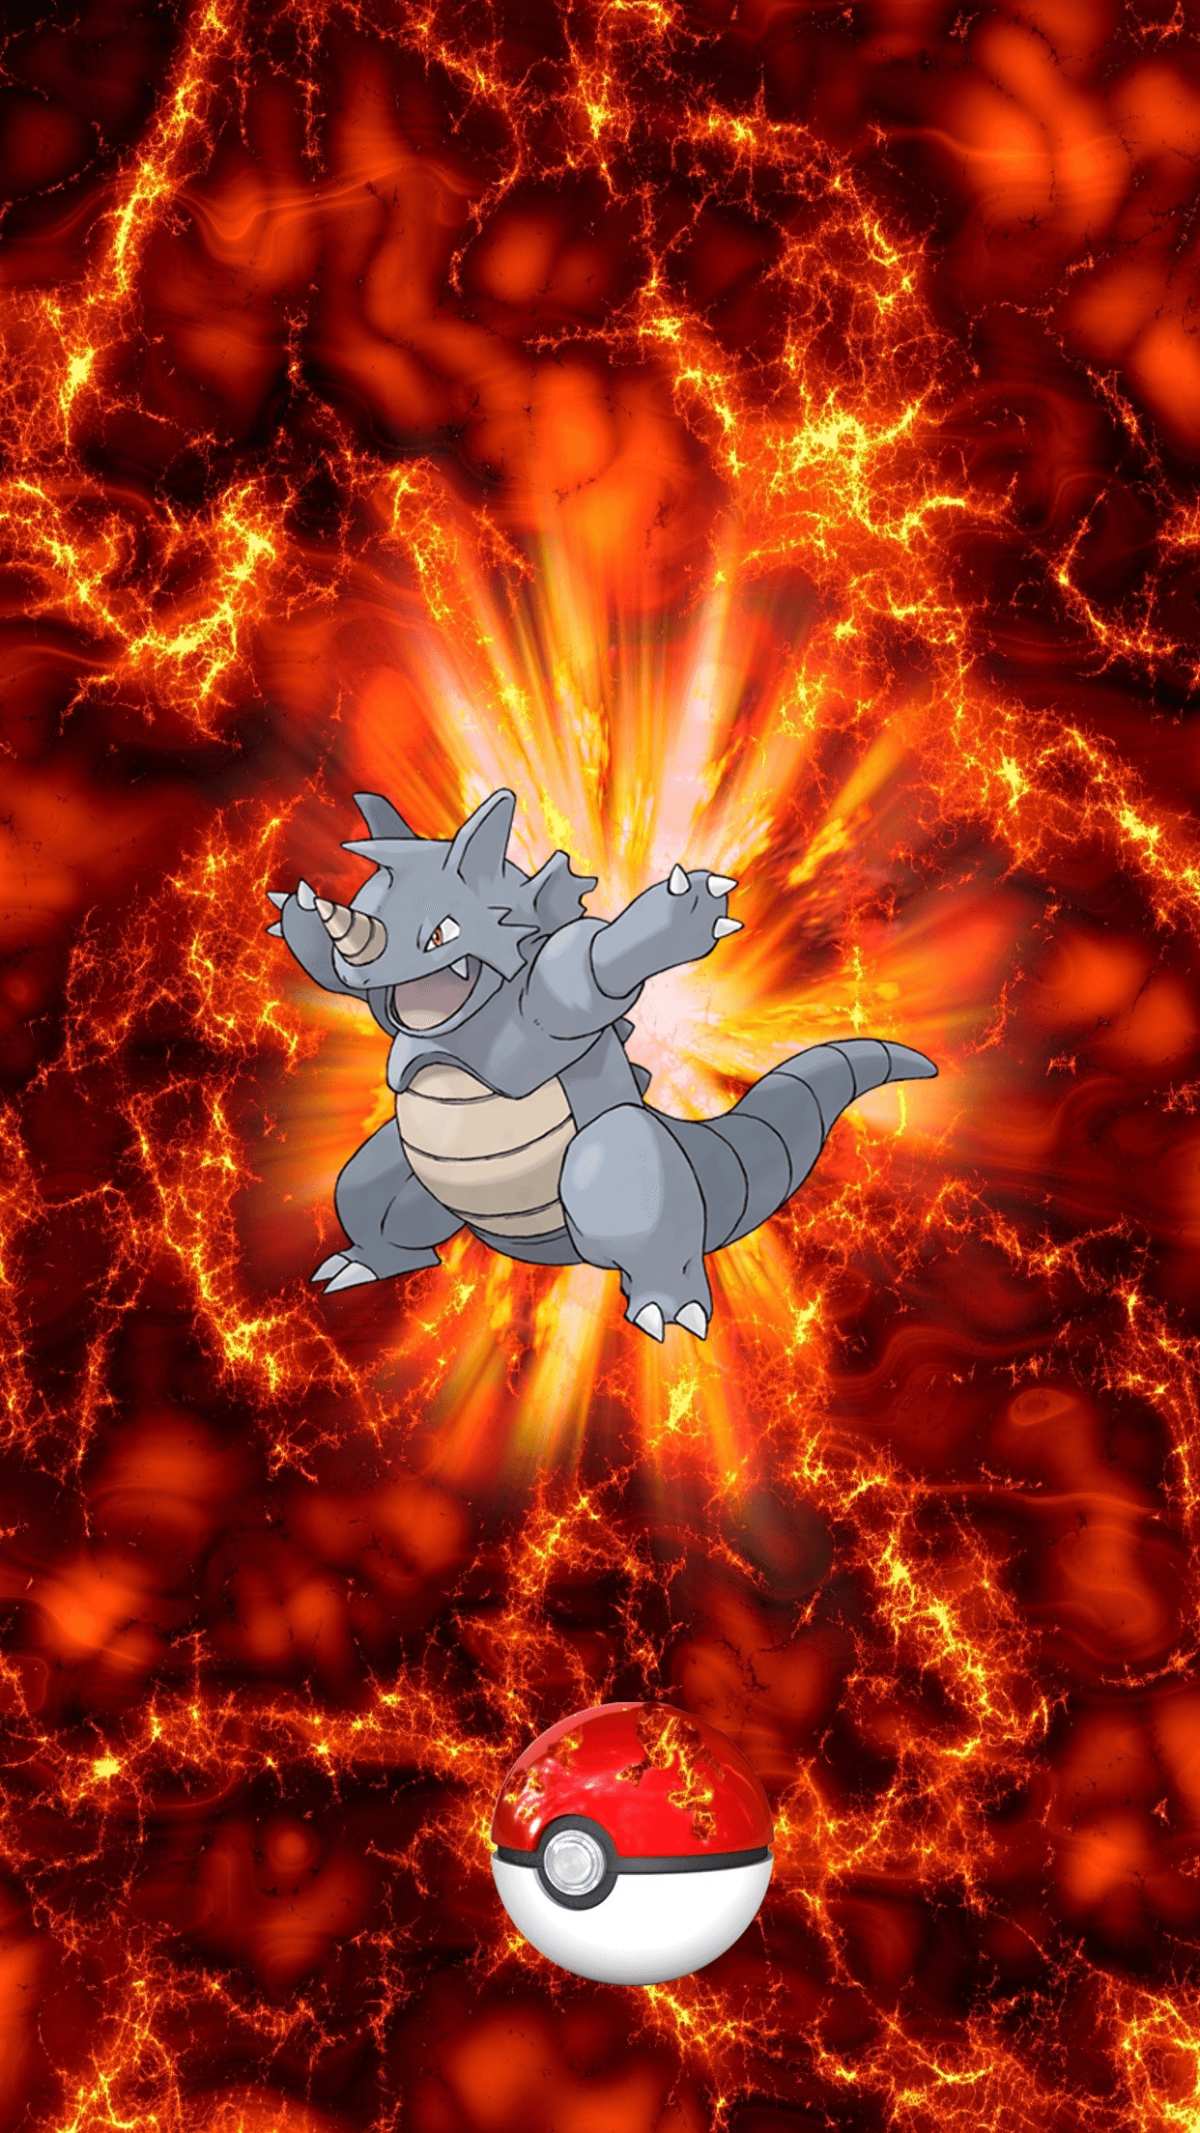 112 Fire Pokeball Rhydon Sidon Rhyhorn | Wallpaper